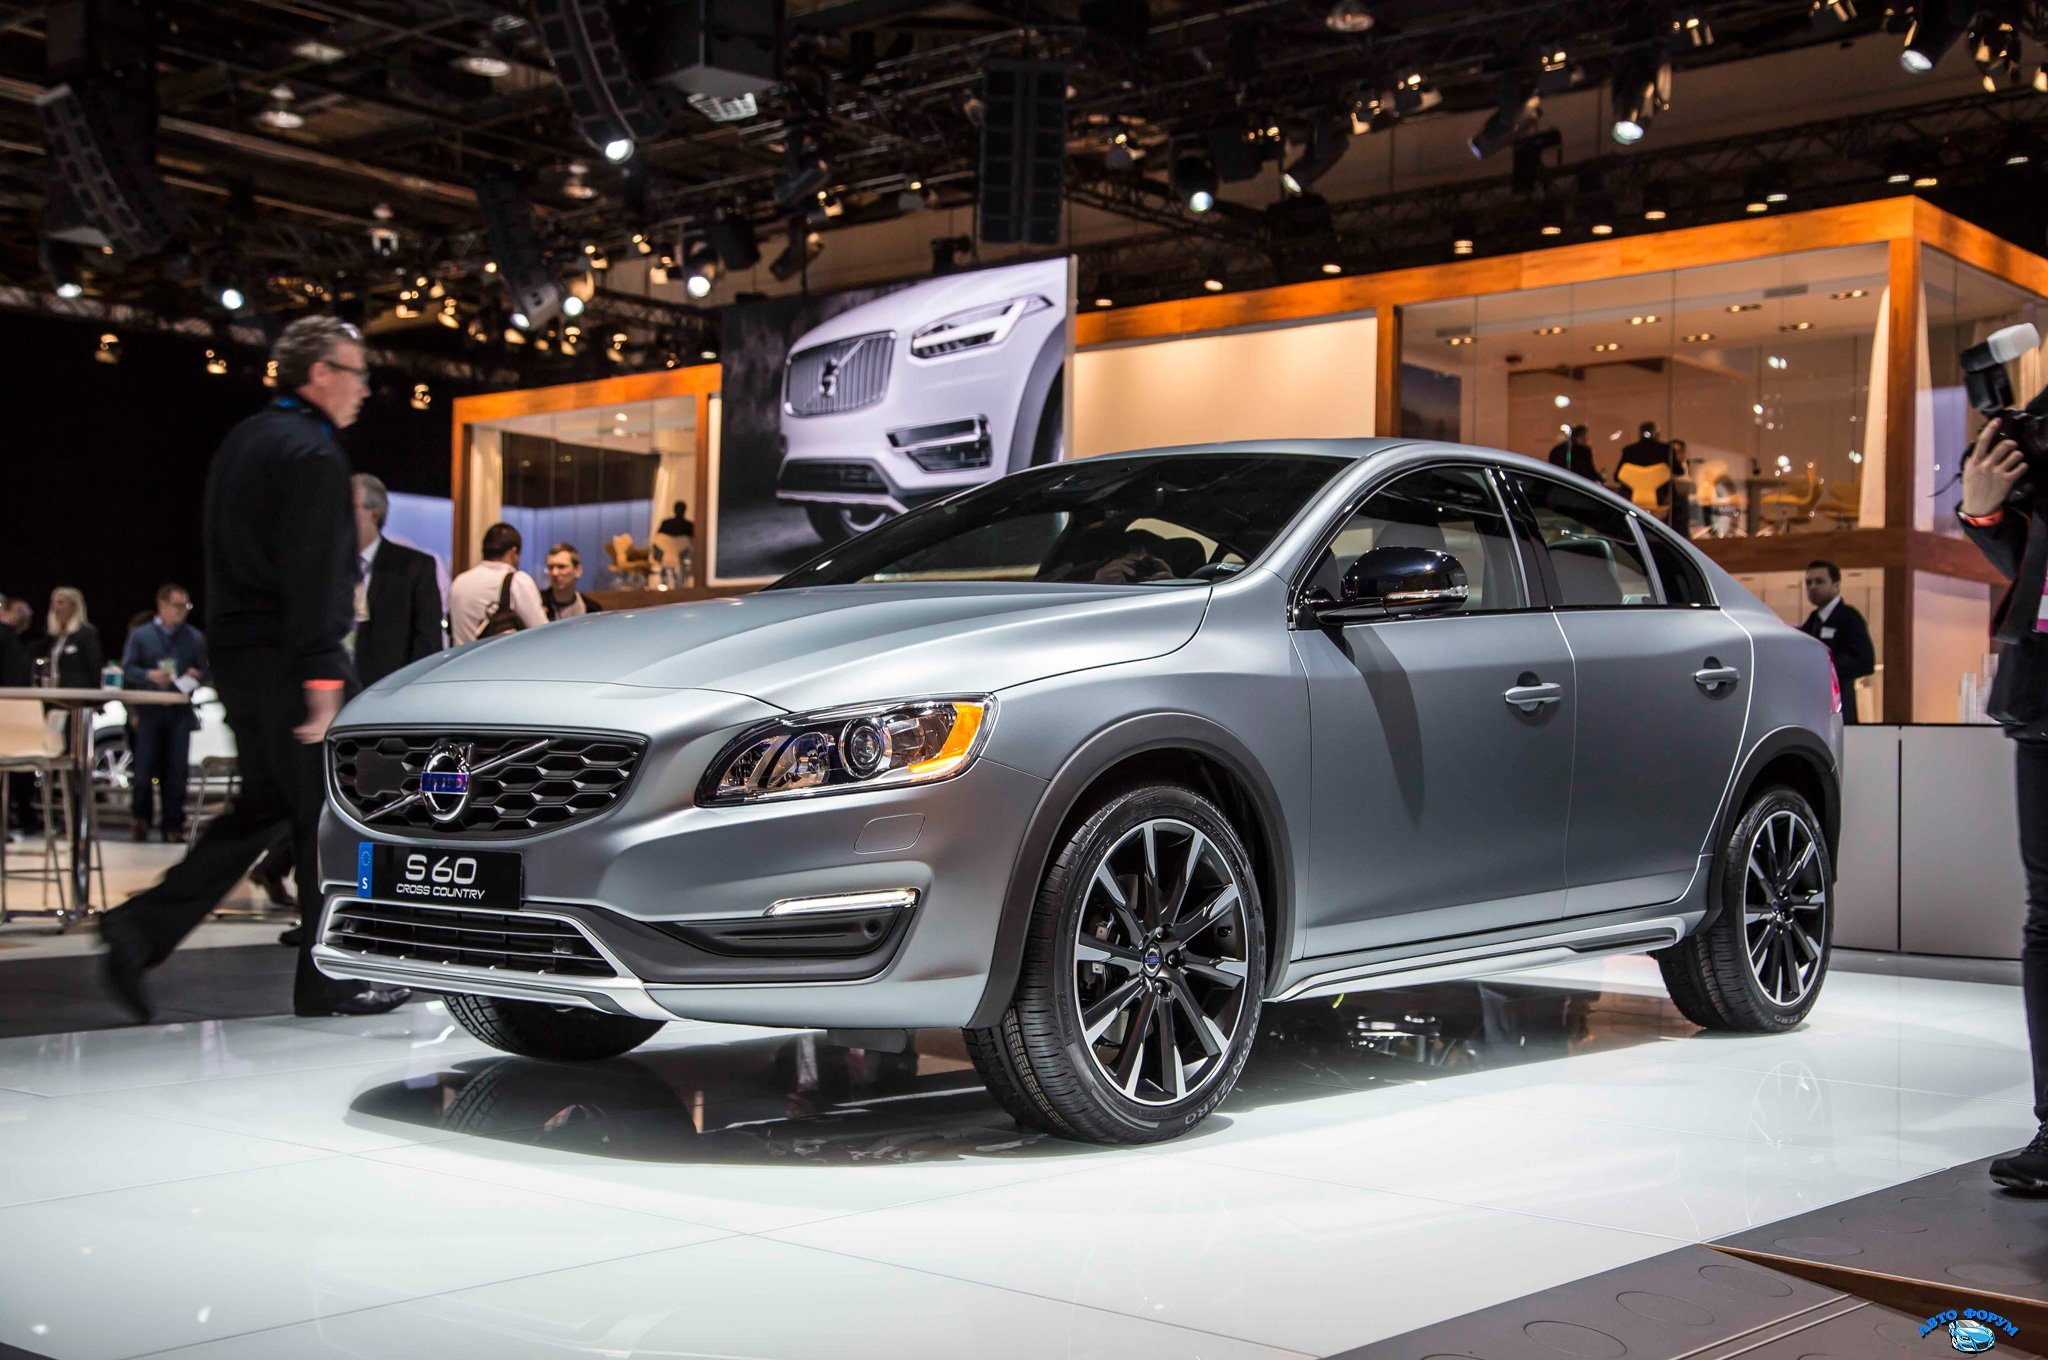 2016-Volvo-S60-Cross-Country-front-three-quarter.jpg